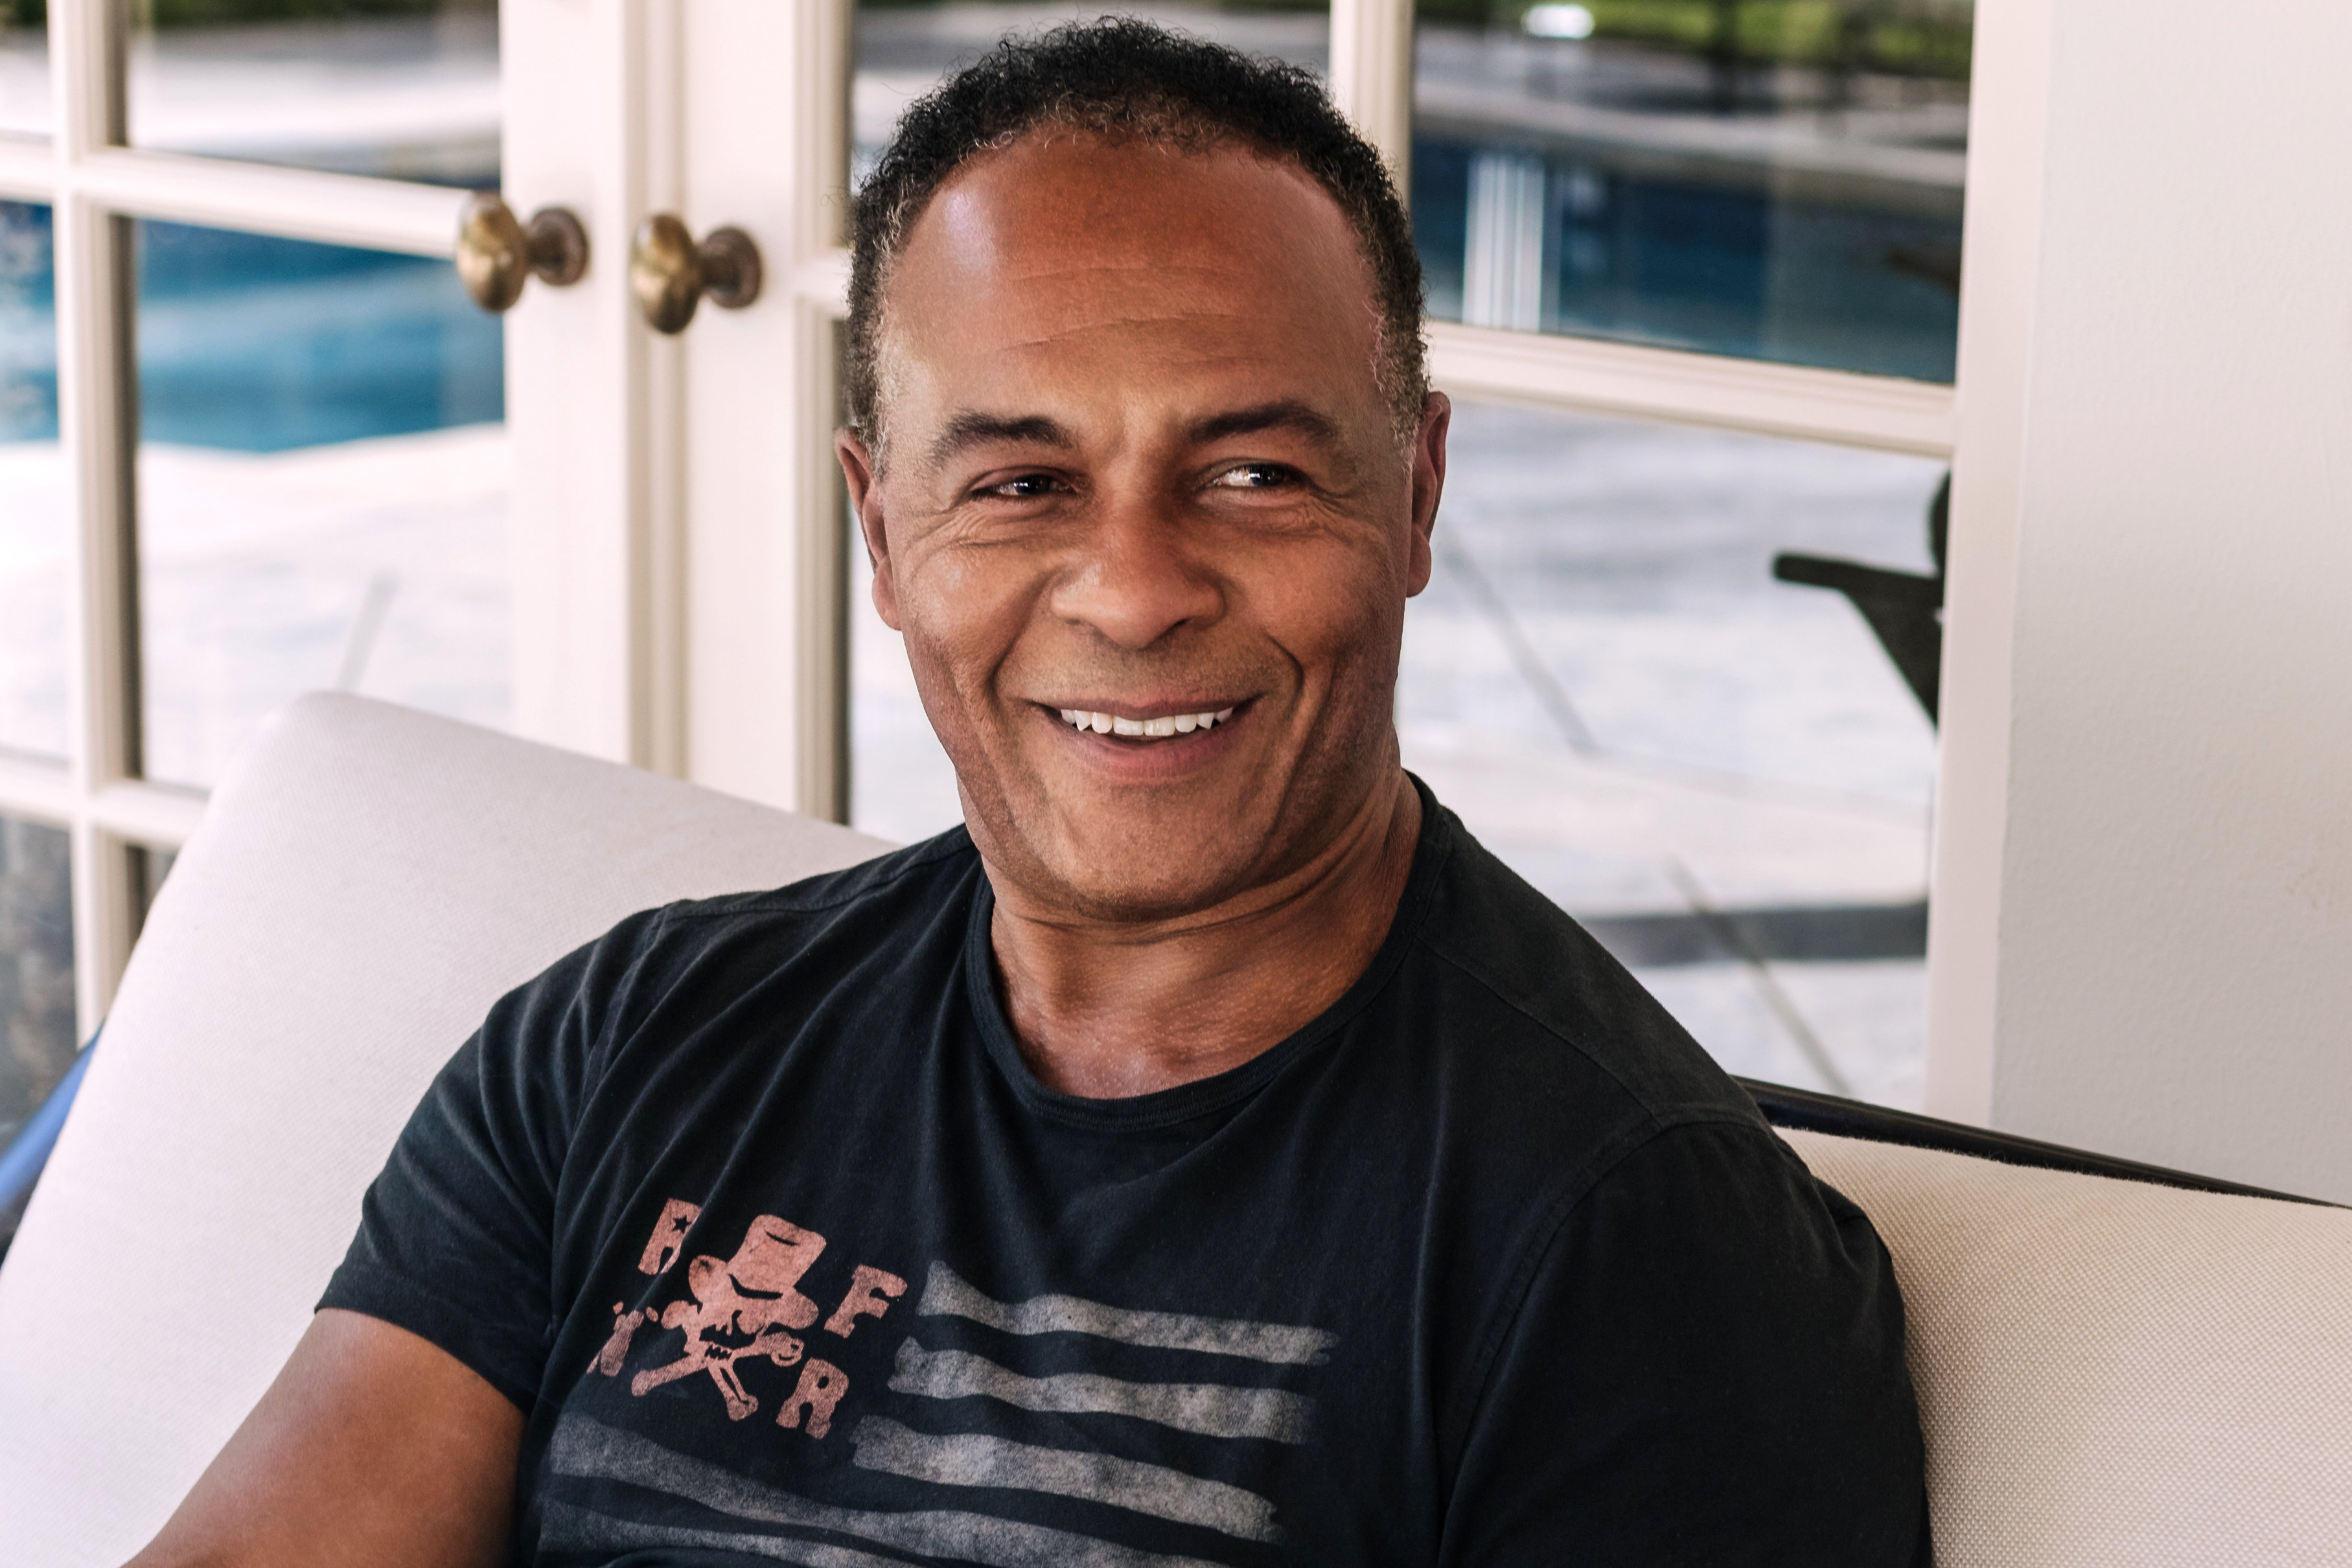 On the Raydio: An Interview with Ray Parker, Jr.